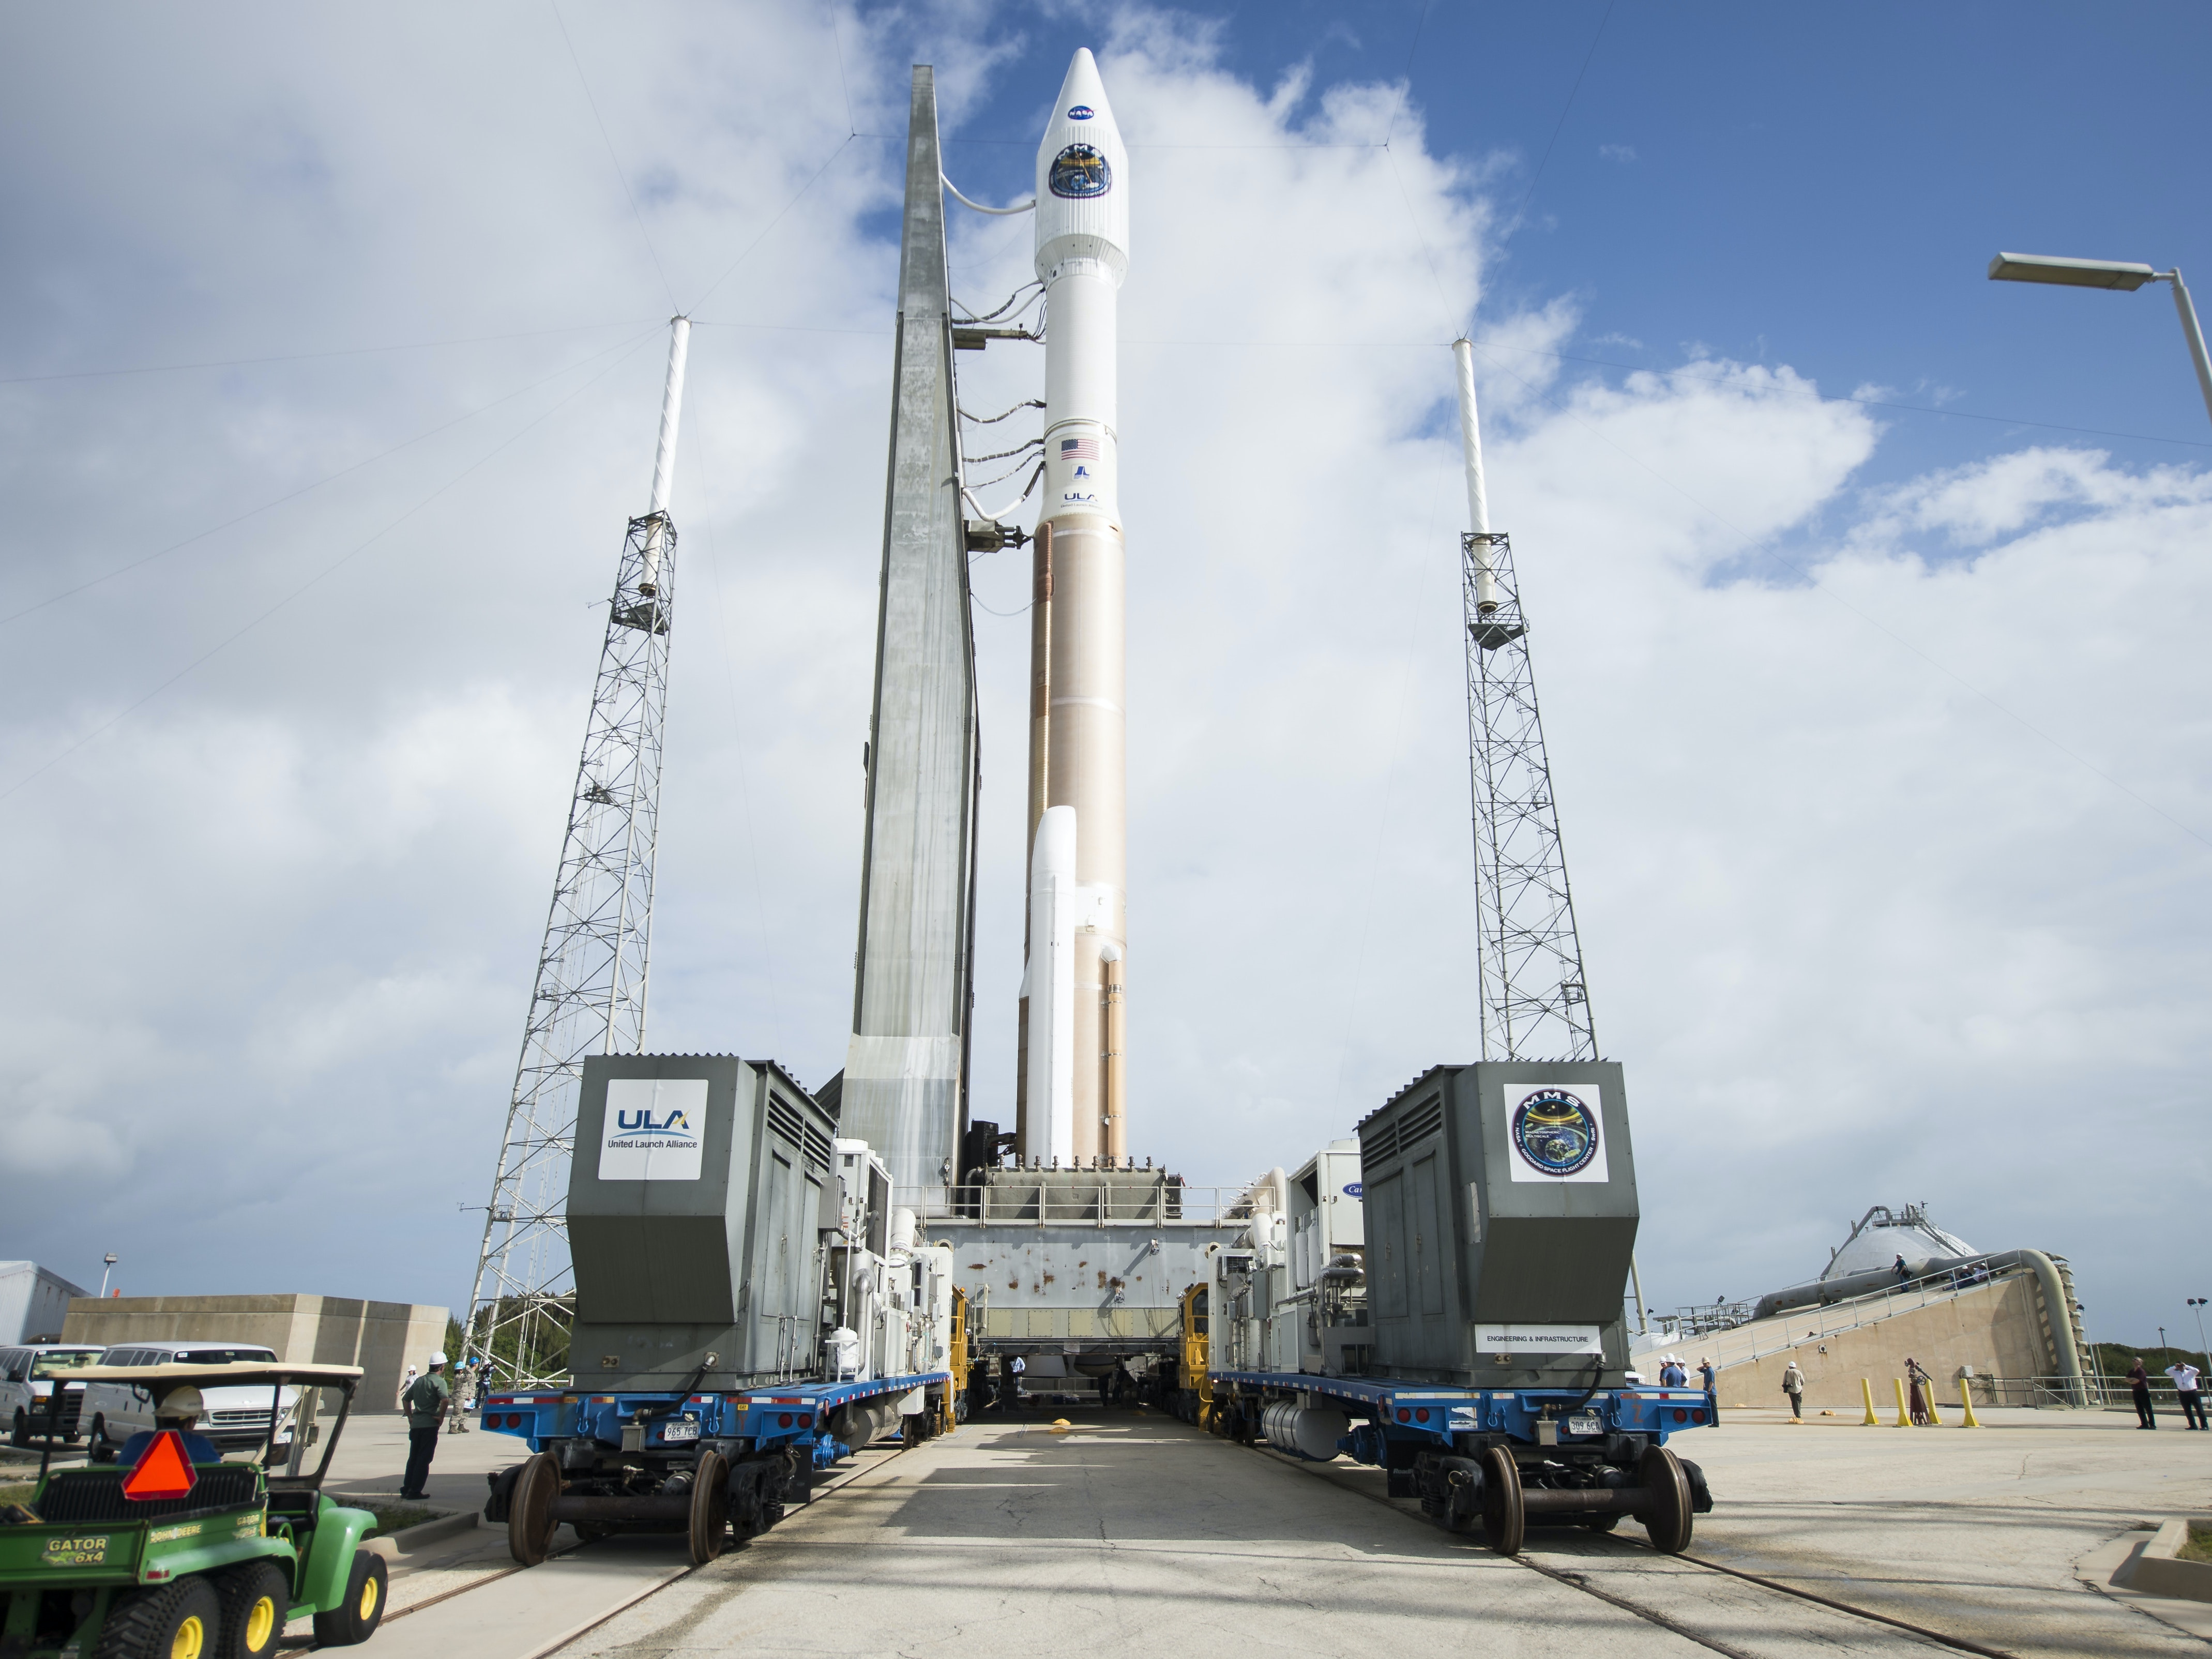 In the handout photo from NASA, the United Launch Alliance Atlas V rocket with NASA's Magnetospheric Multiscale (MMS) spacecraft onboard rolls out of the Cape Canaveral Air Force Station Space Launch Complex 41 Vertical Integration Facility to the launch pad, on March 11, 2015 in Cape Canaveral, Florida. Launch of the Atlas V rocket is scheduled for March 12 and will carry the four identical MMS spacecraft into orbit to provide the first three-dimensional view of magnetic reconnection.